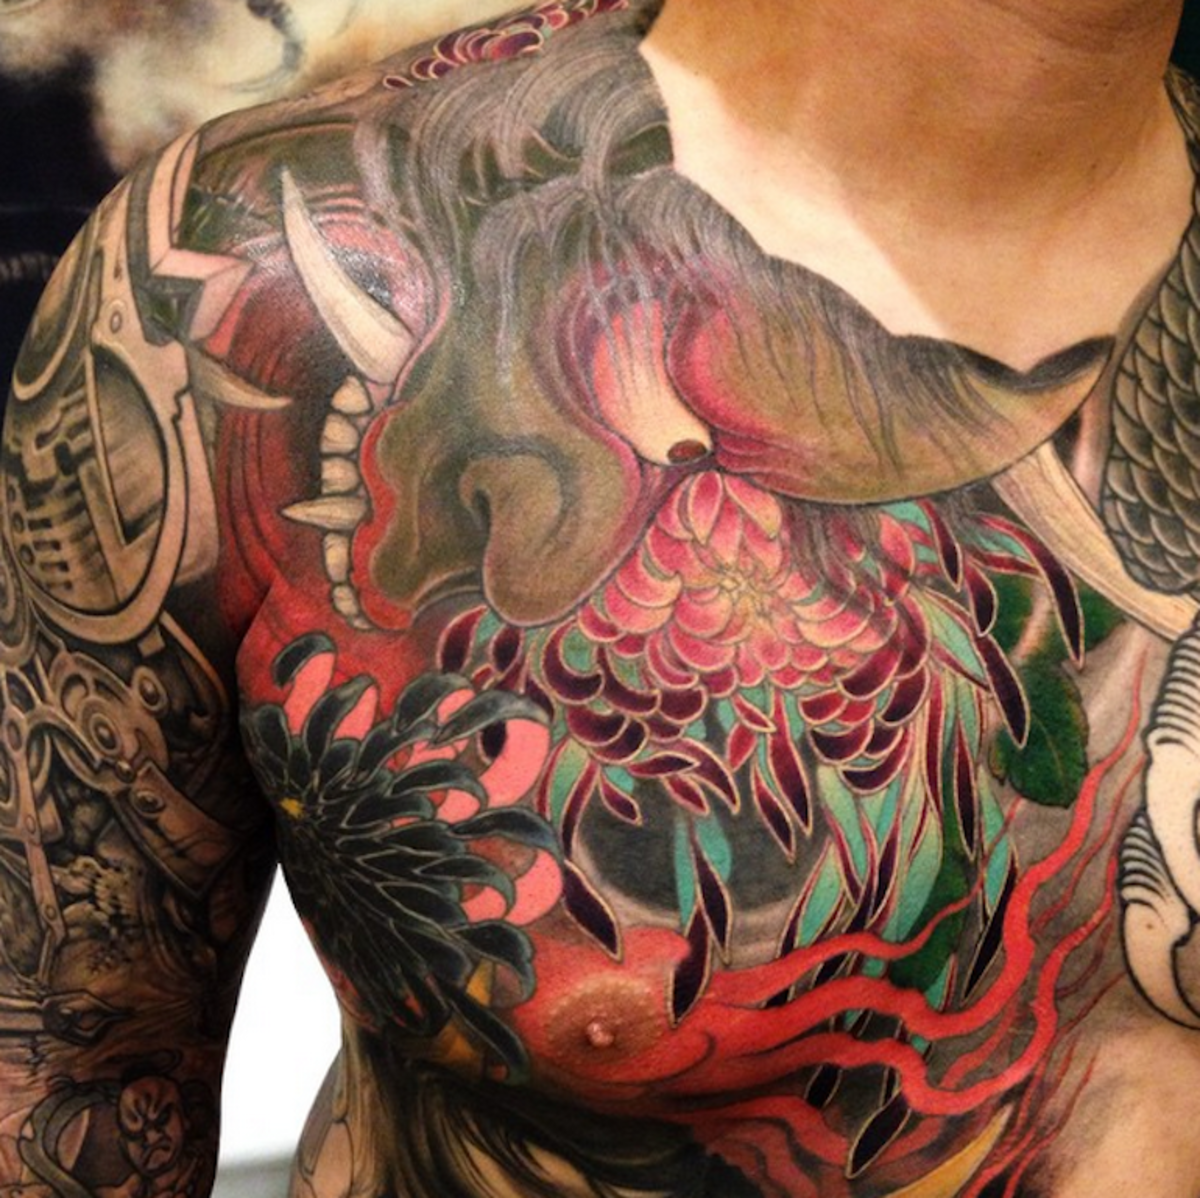 Shige Iwasaki, or Yellow Blaze, a self taught tattoo artist.